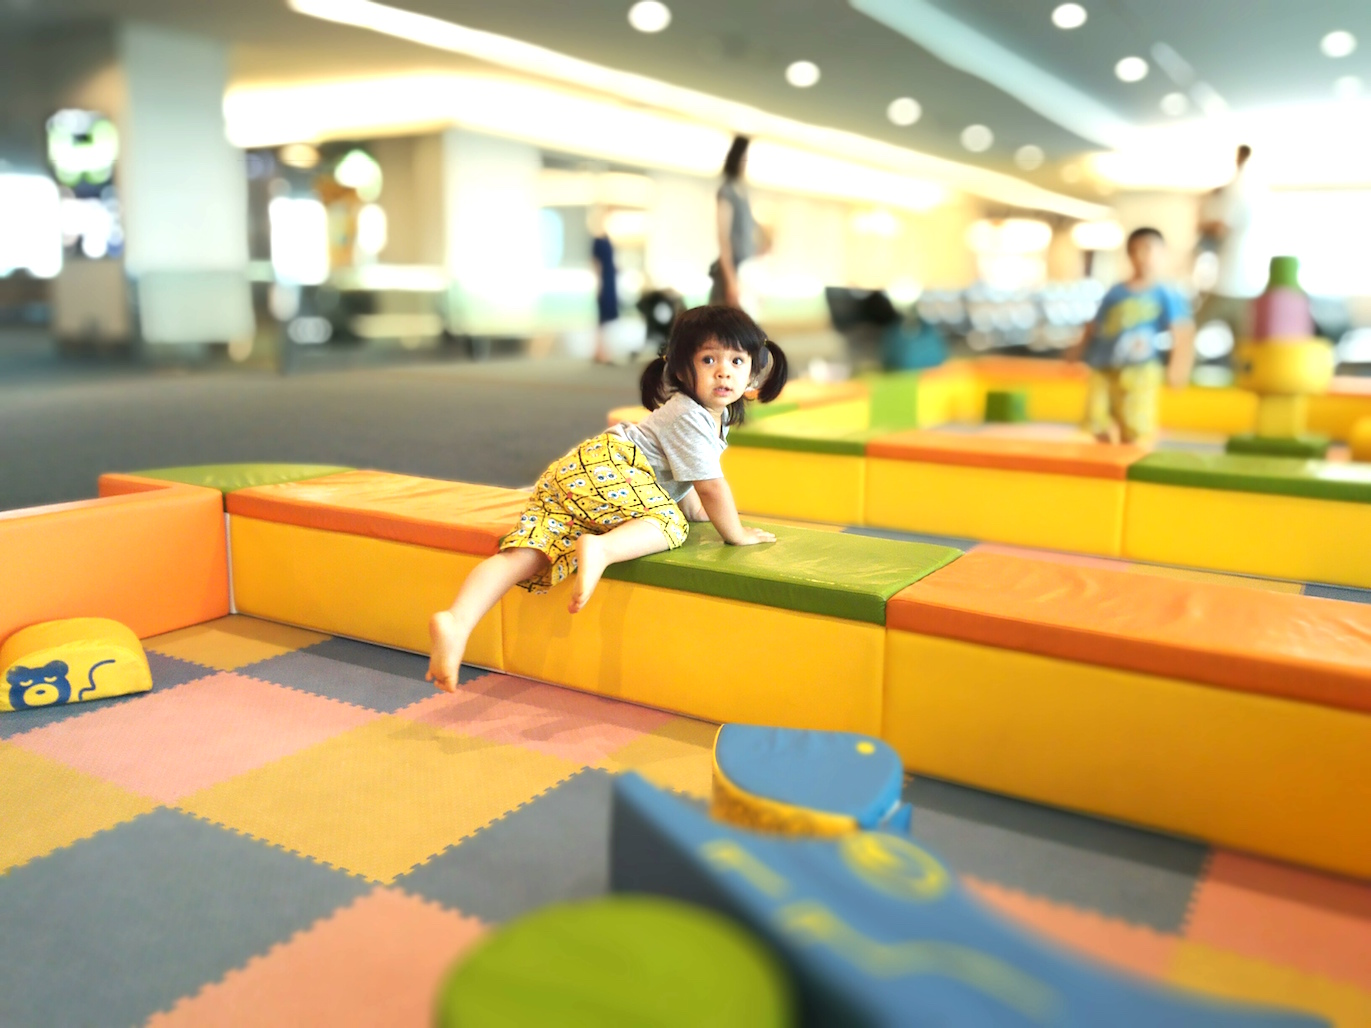 My daughter having fun crawling and rolling around in the play space